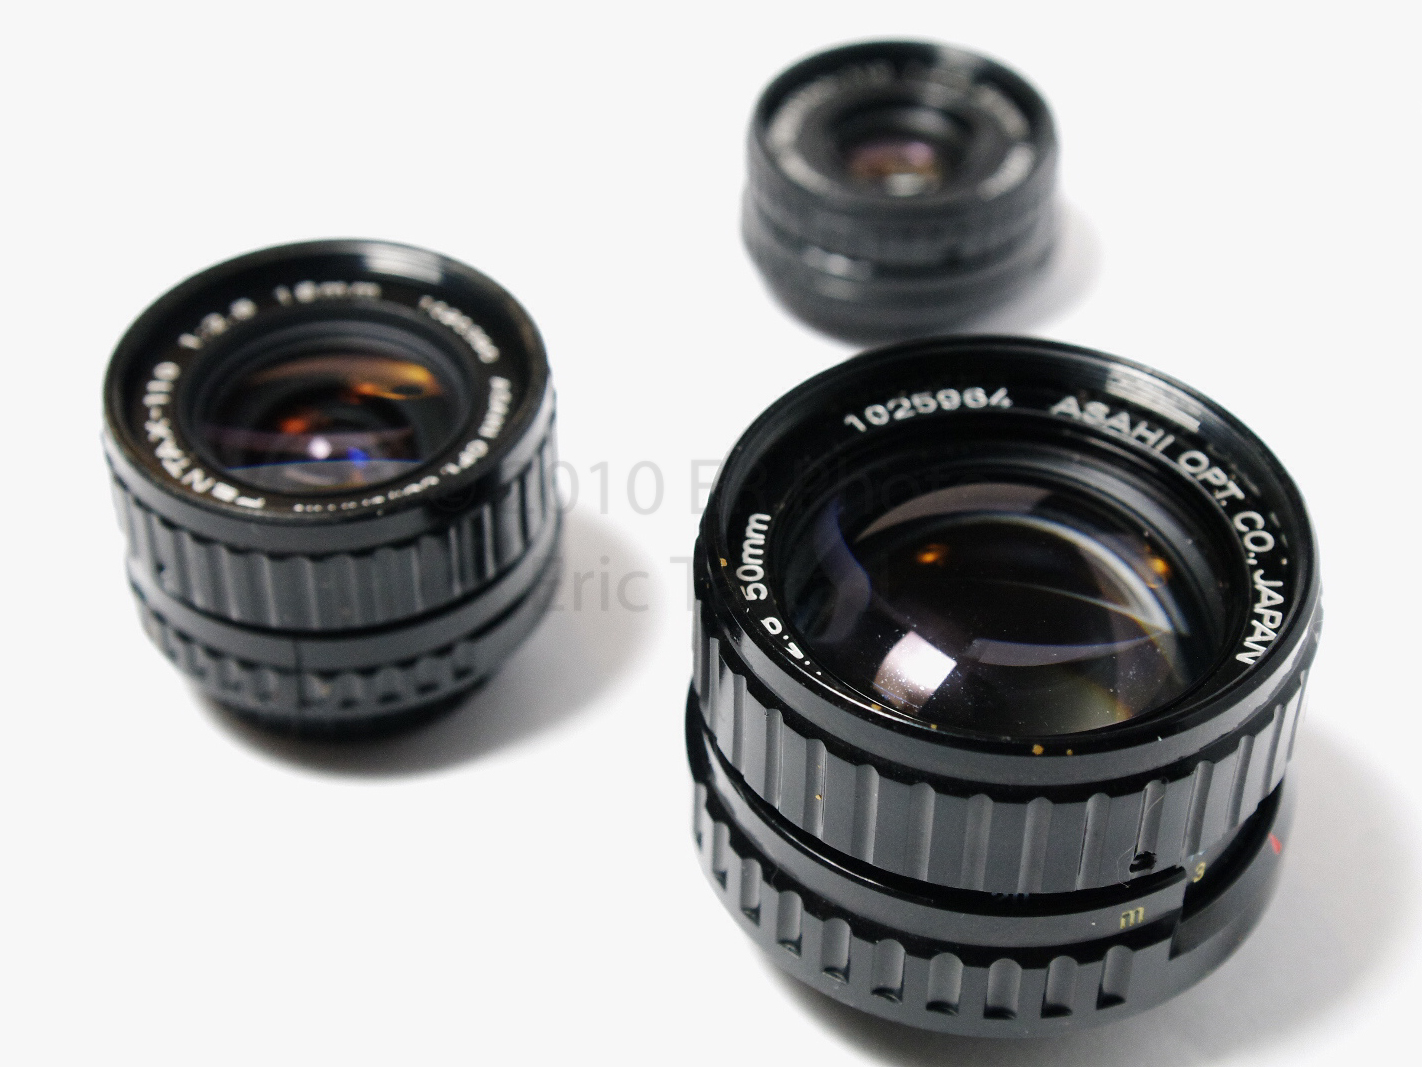 , Pentax 110 – 18mm, 24mm, 50mm, and 70mm f/2.8 on MFT